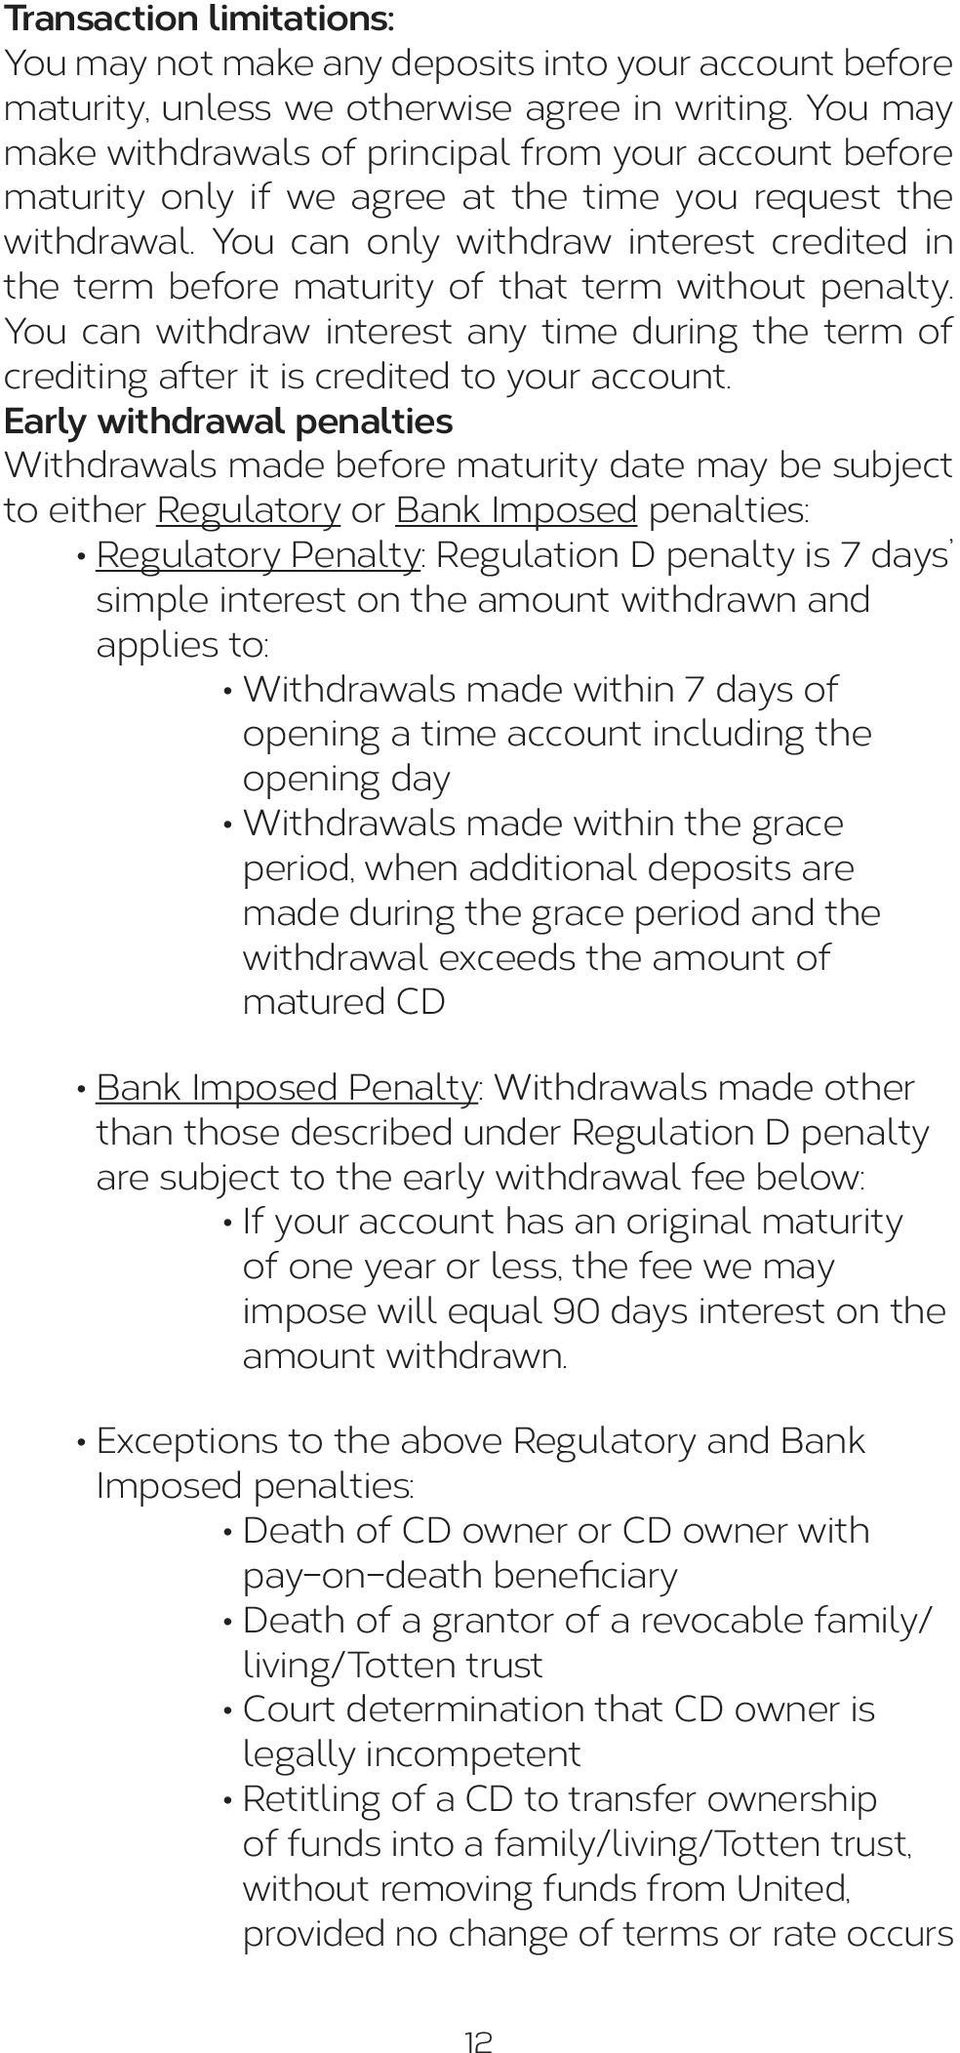 You can only withdraw interest credited in the term before maturity of that term without penalty. You can withdraw interest any time during the term of crediting after it is credited to your account.